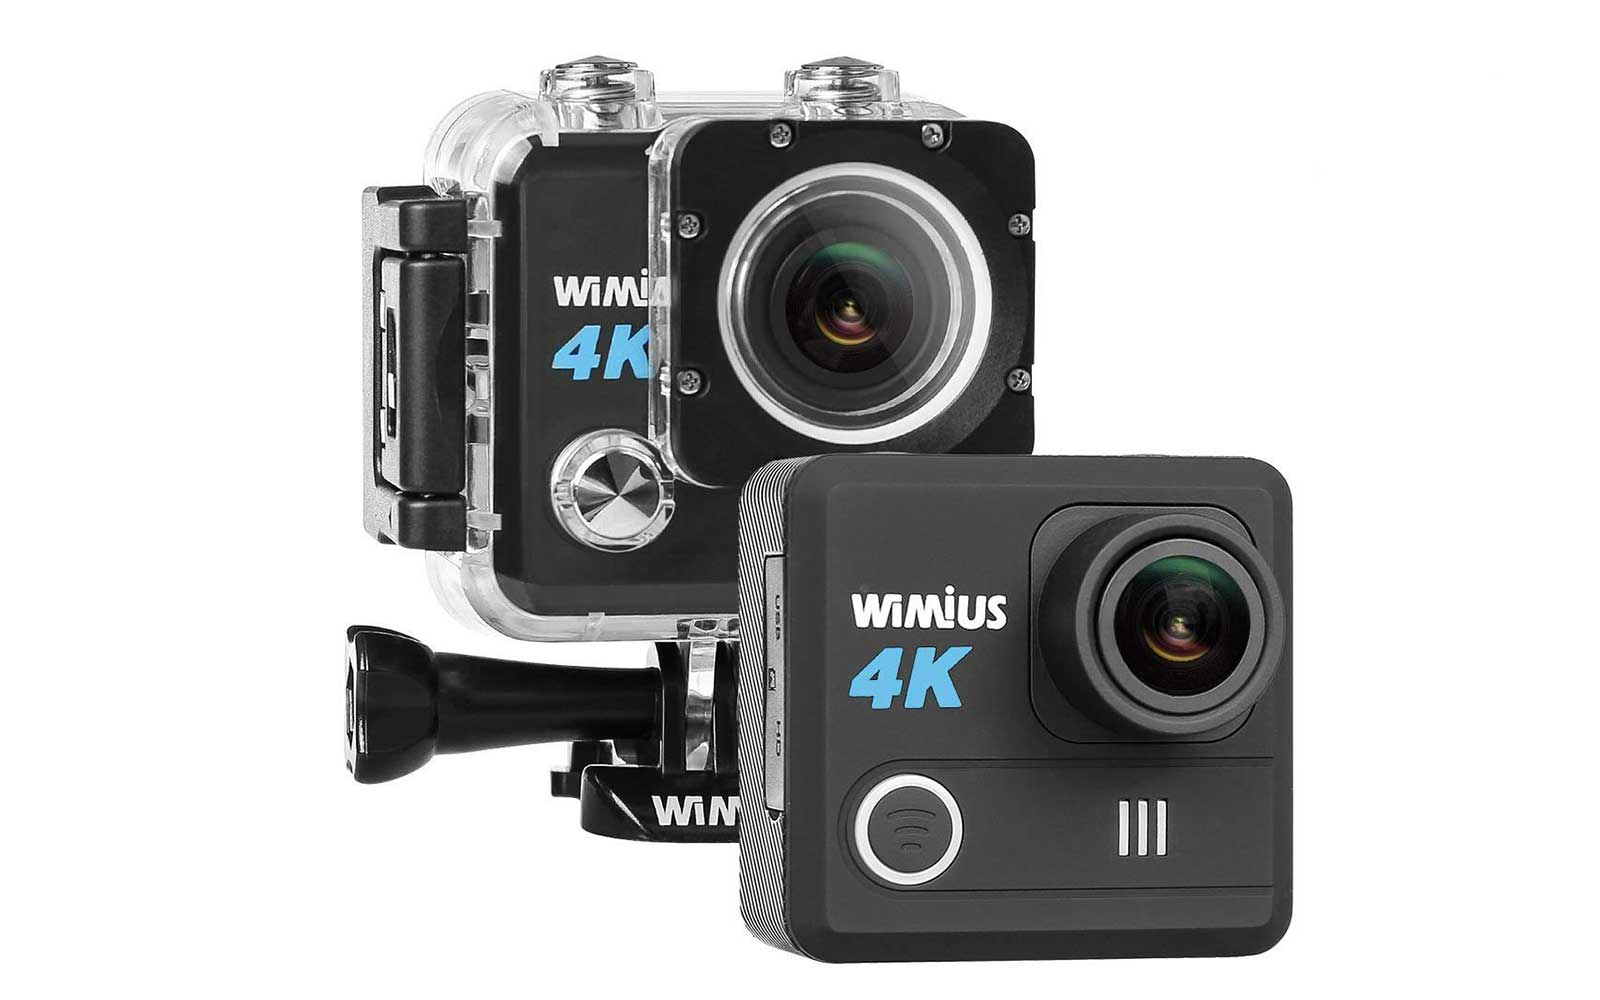 Wimius camera for sale on Amazon